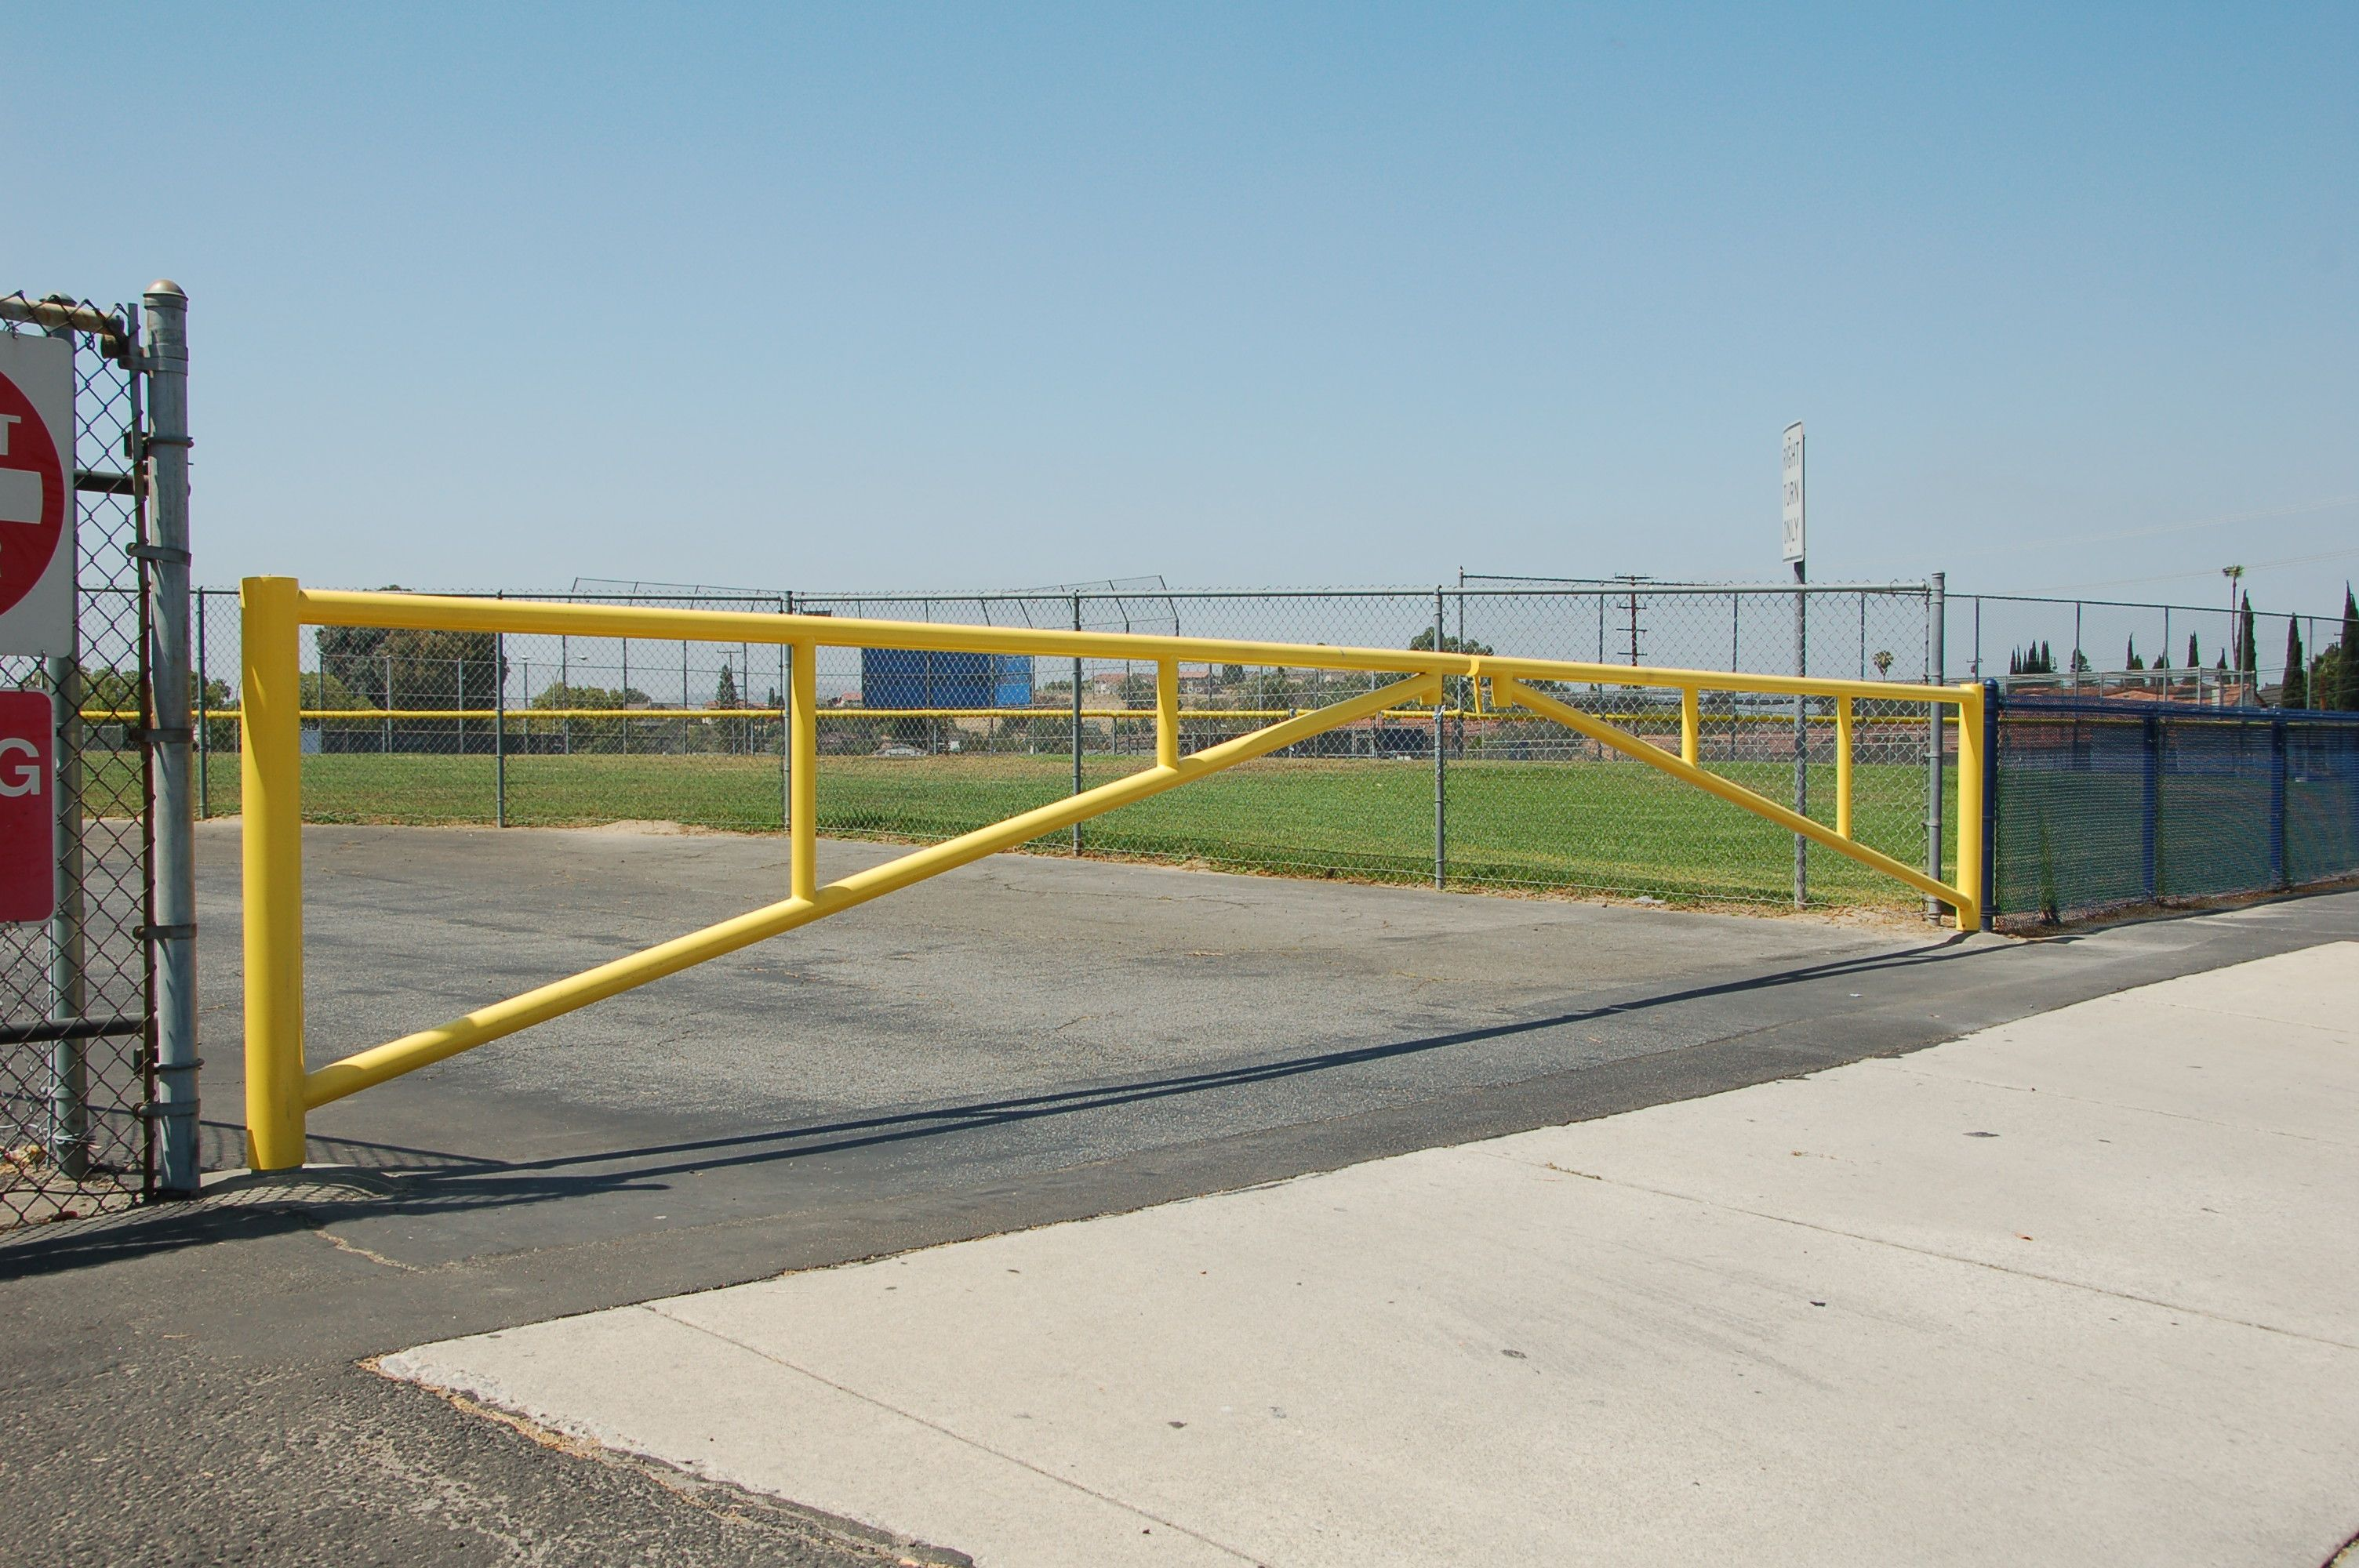 Security gate system  #securitygates #gates | Fence and